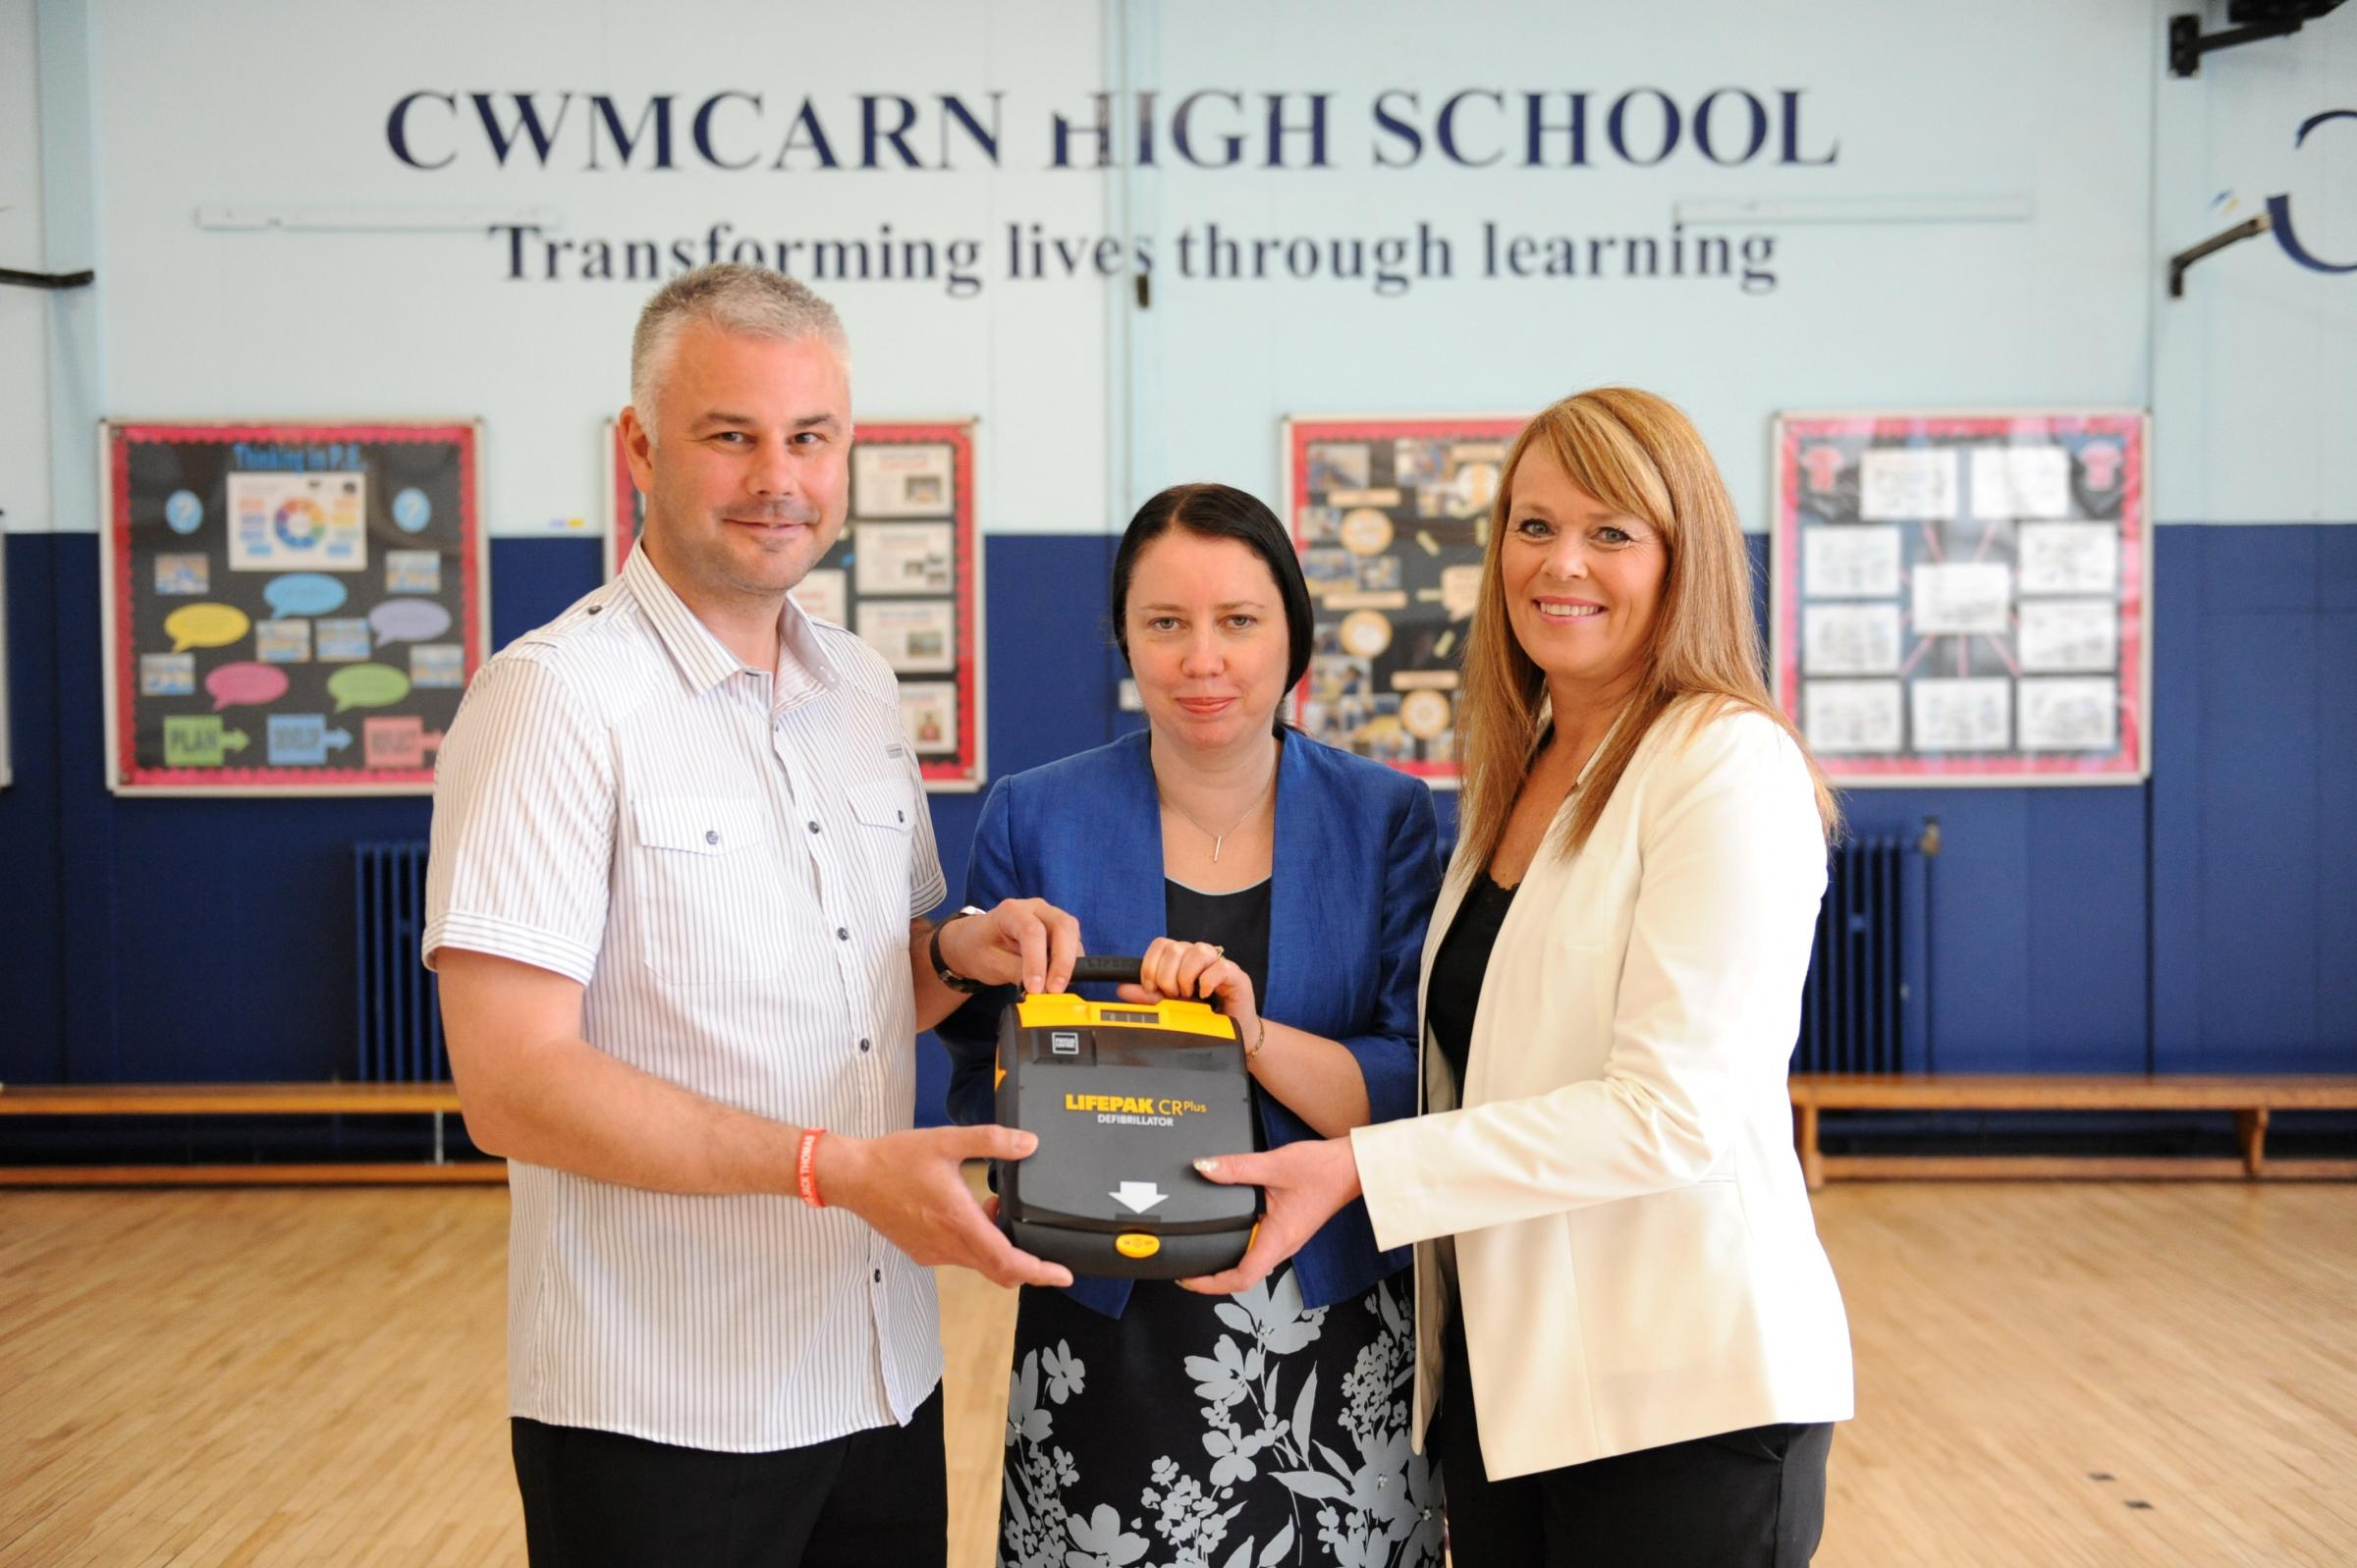 Jack's Appeal with General Dynamics UK presented a heart defibrillator to Cwmcarn High School. Pictured from left Grant Thomas, Jacqui Peplinski Head Teacher and June Thomas.